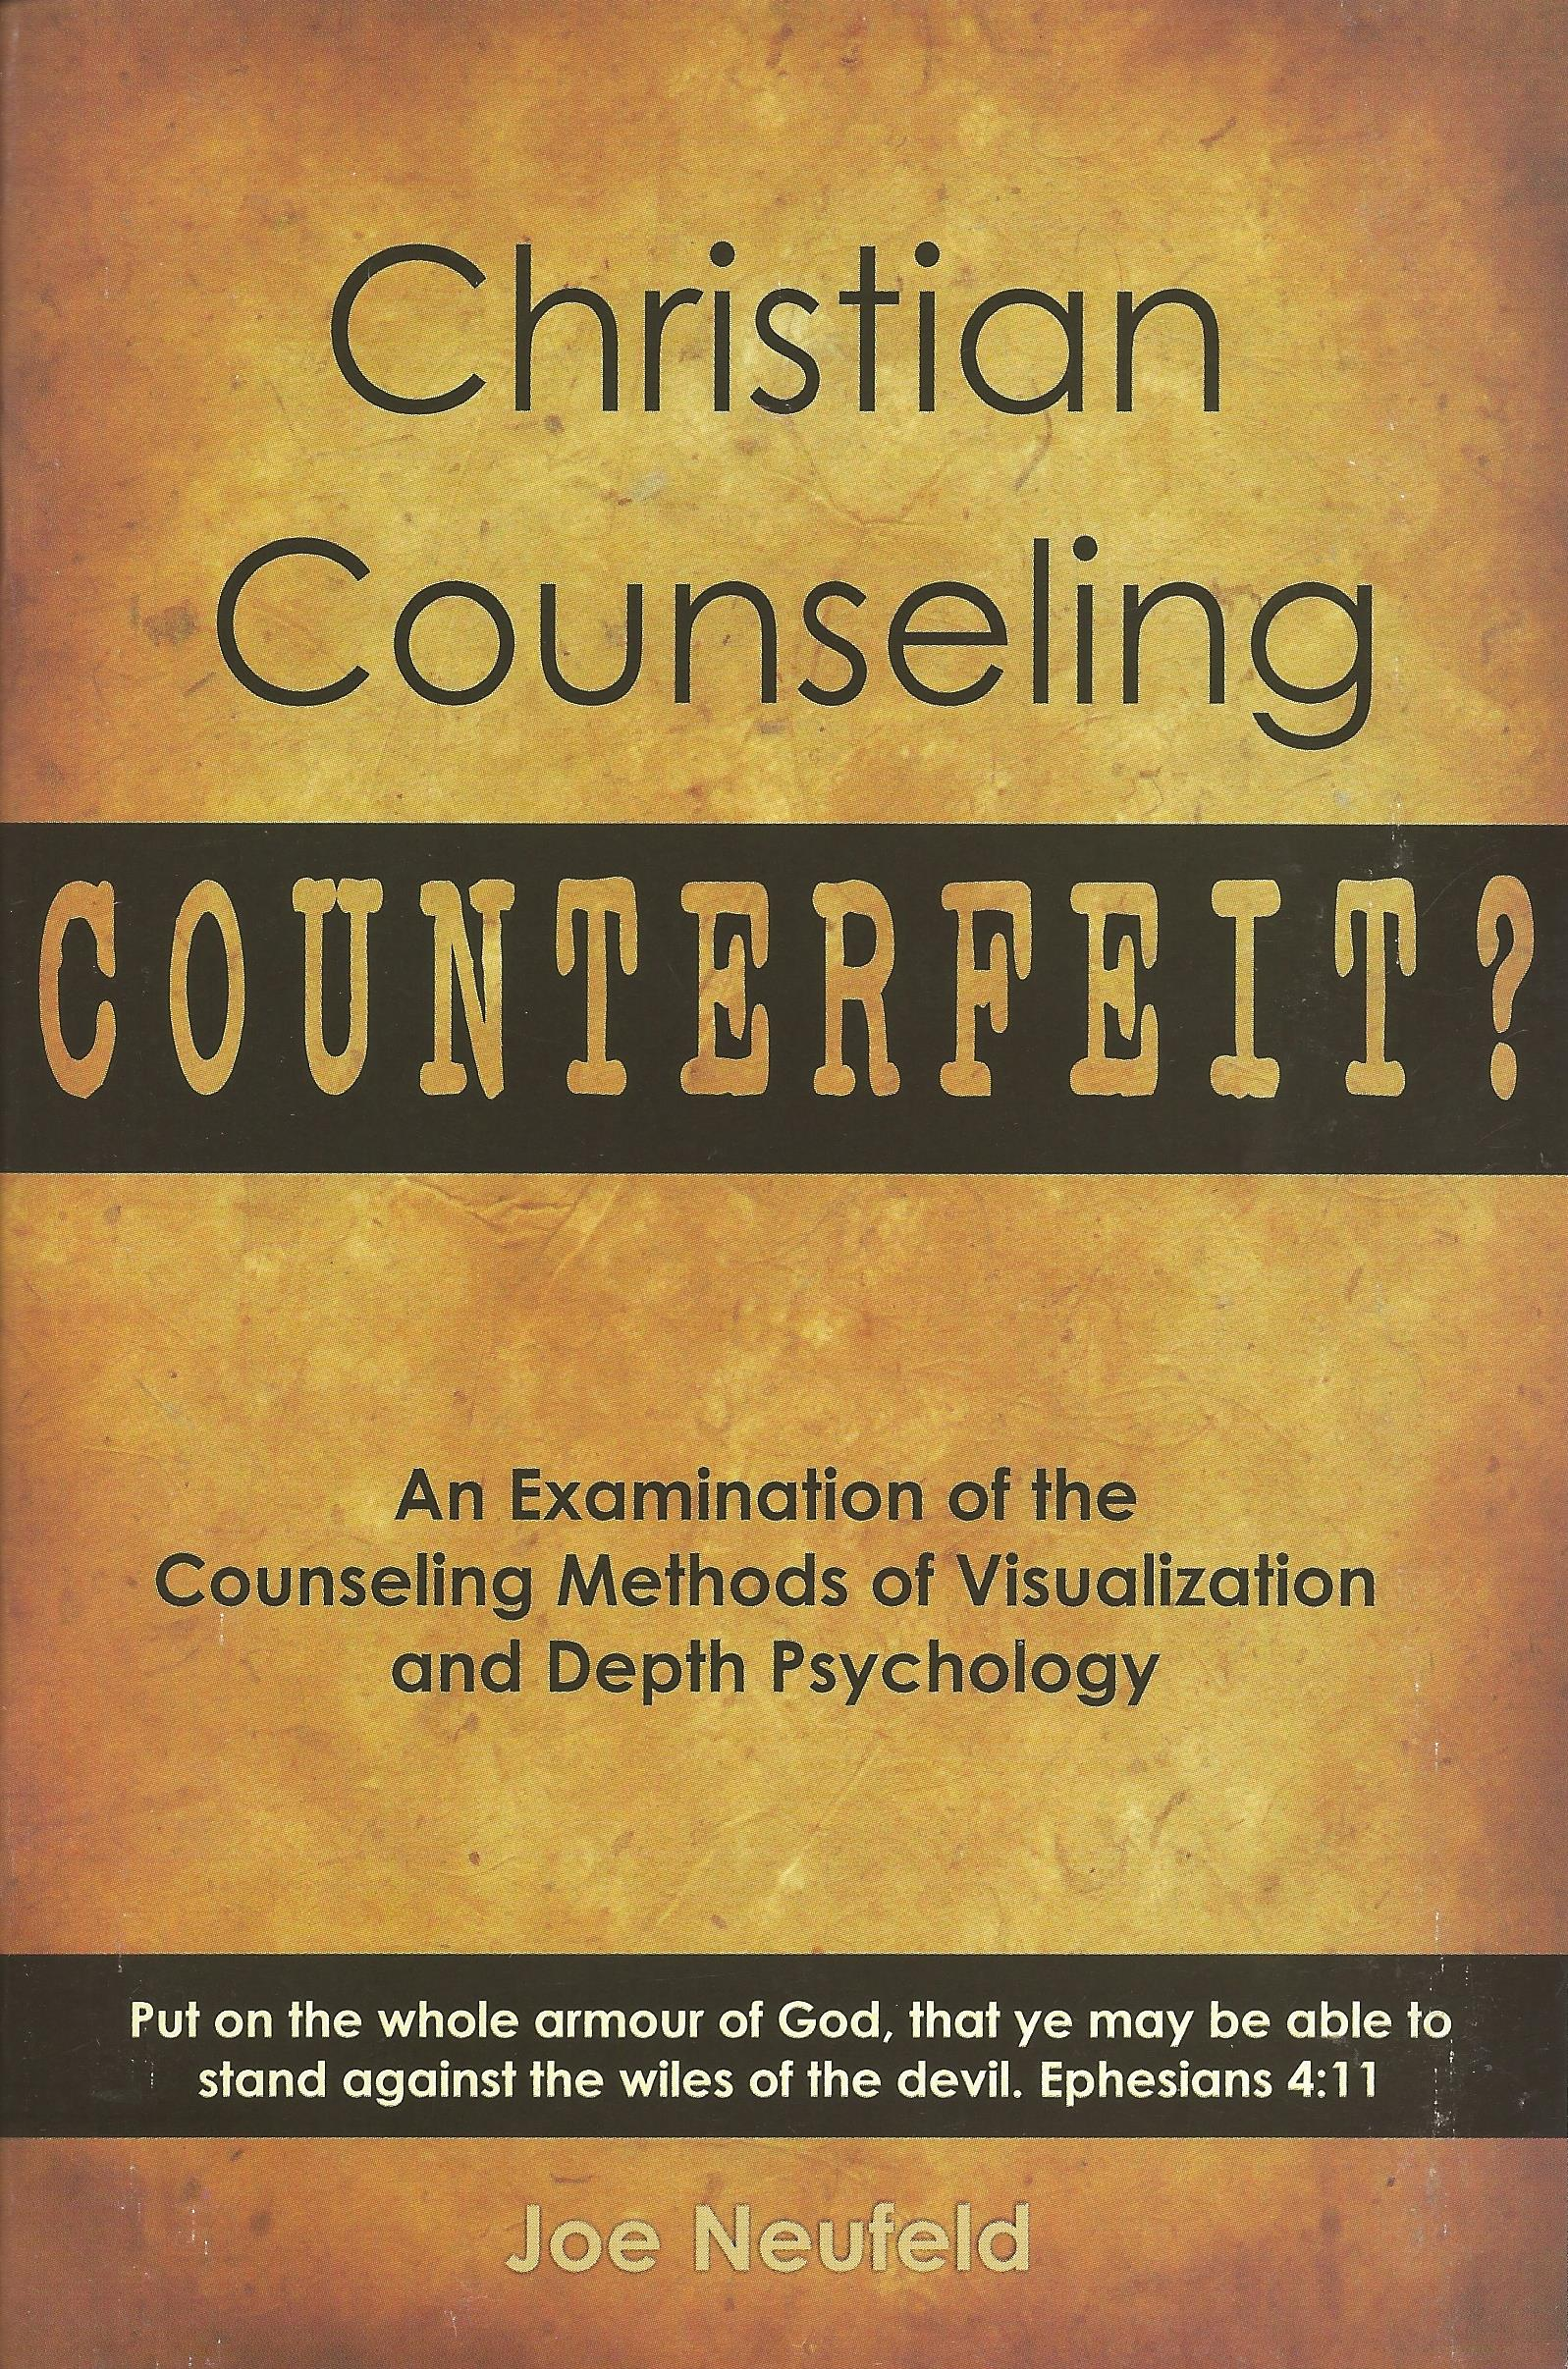 CHRISTIAN COUNSELING COUNTERFEIT? Joe Neufeld